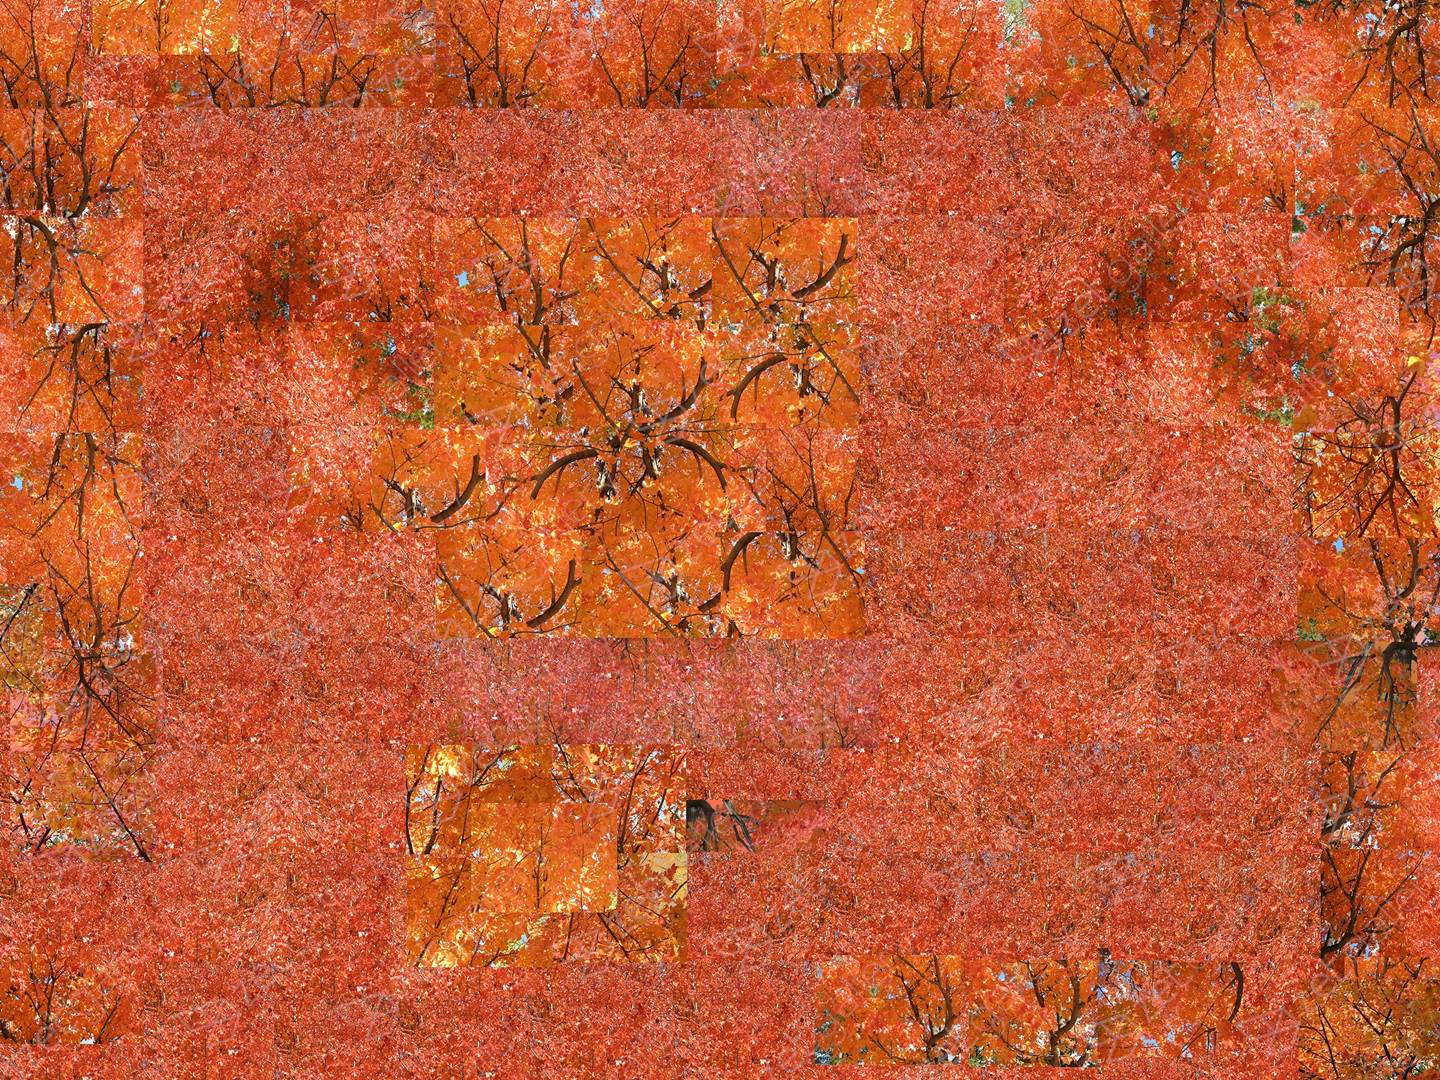 Fall - Red Opus 1, original   Photography by Shimon and Tammar Rothstein